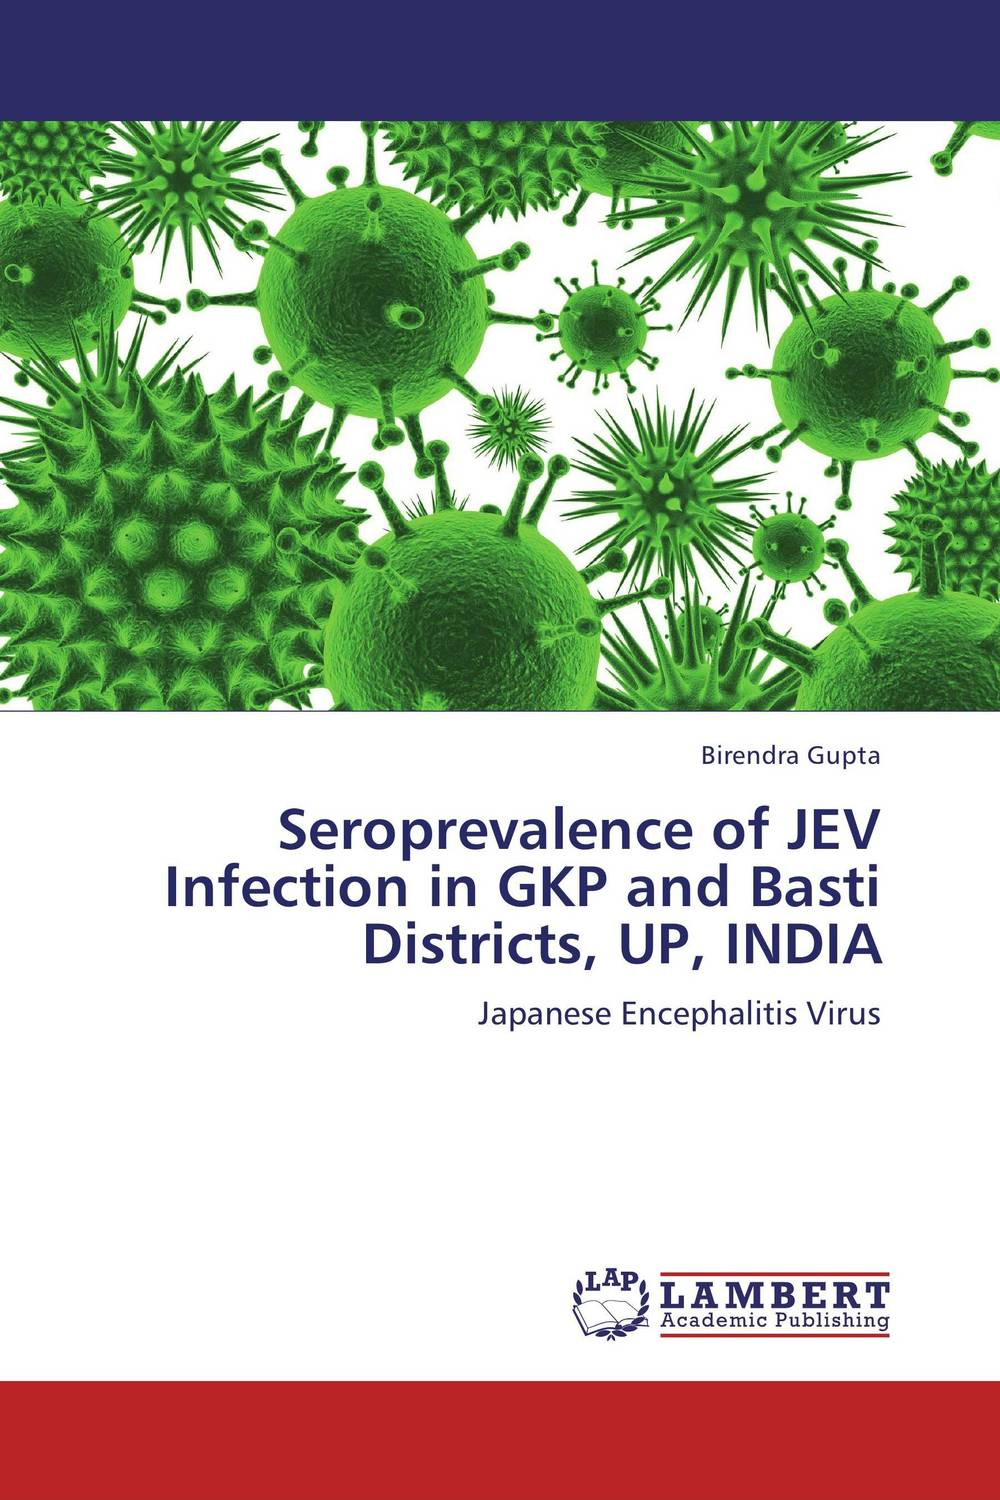 Seroprevalence of JEV Infection in GKP and Basti Districts, UP, INDIA seroprevalence of hiv infection in pregnant women in amassoma nigeria